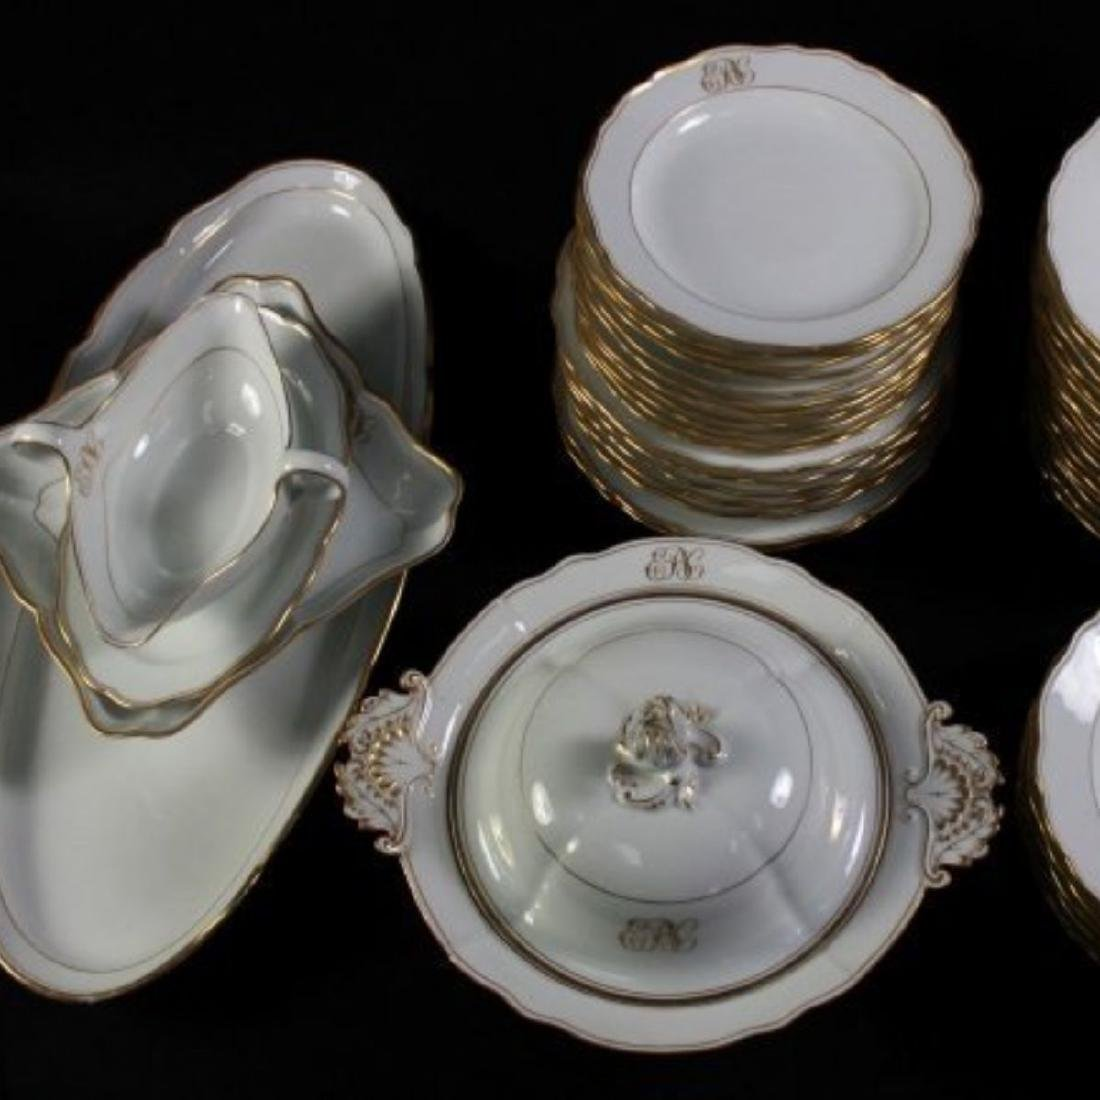 19TH C MEISSEN PART DINER SERVICE WITH THE UNDER GLAZED